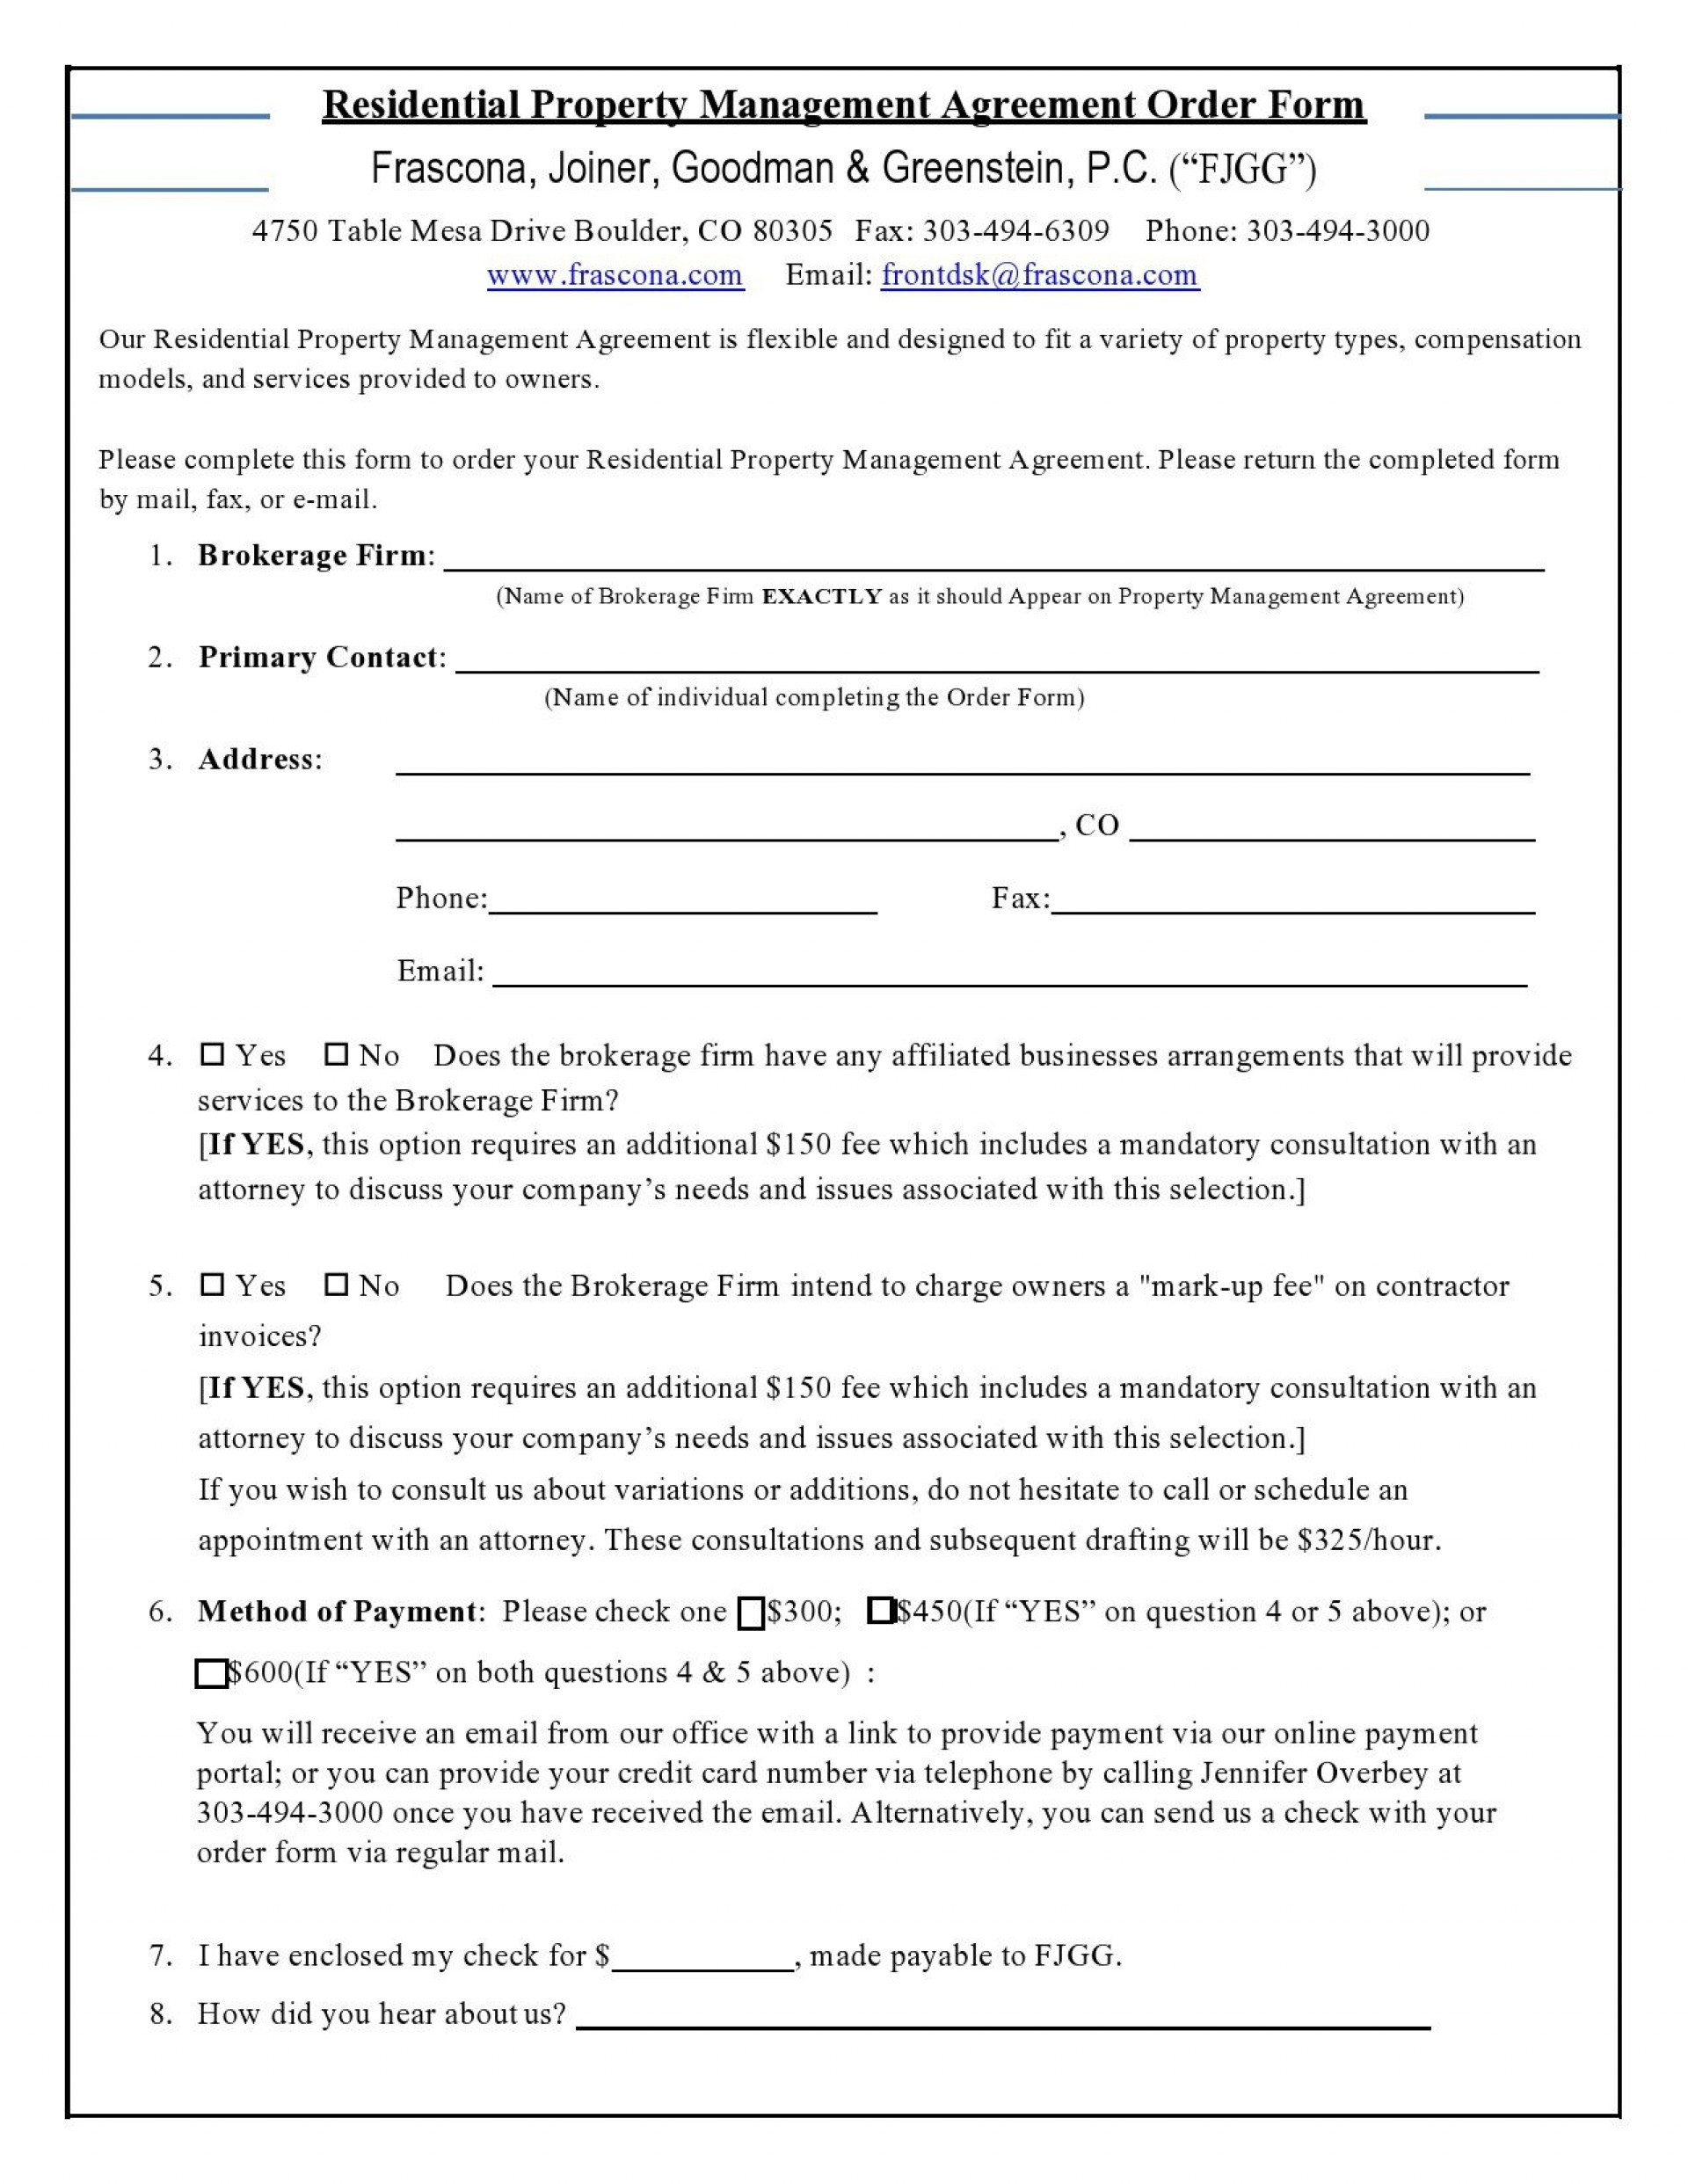 005 Breathtaking Property Management Contract Sample High Definition  Philippine Agreement Template Pdf Commercial1920